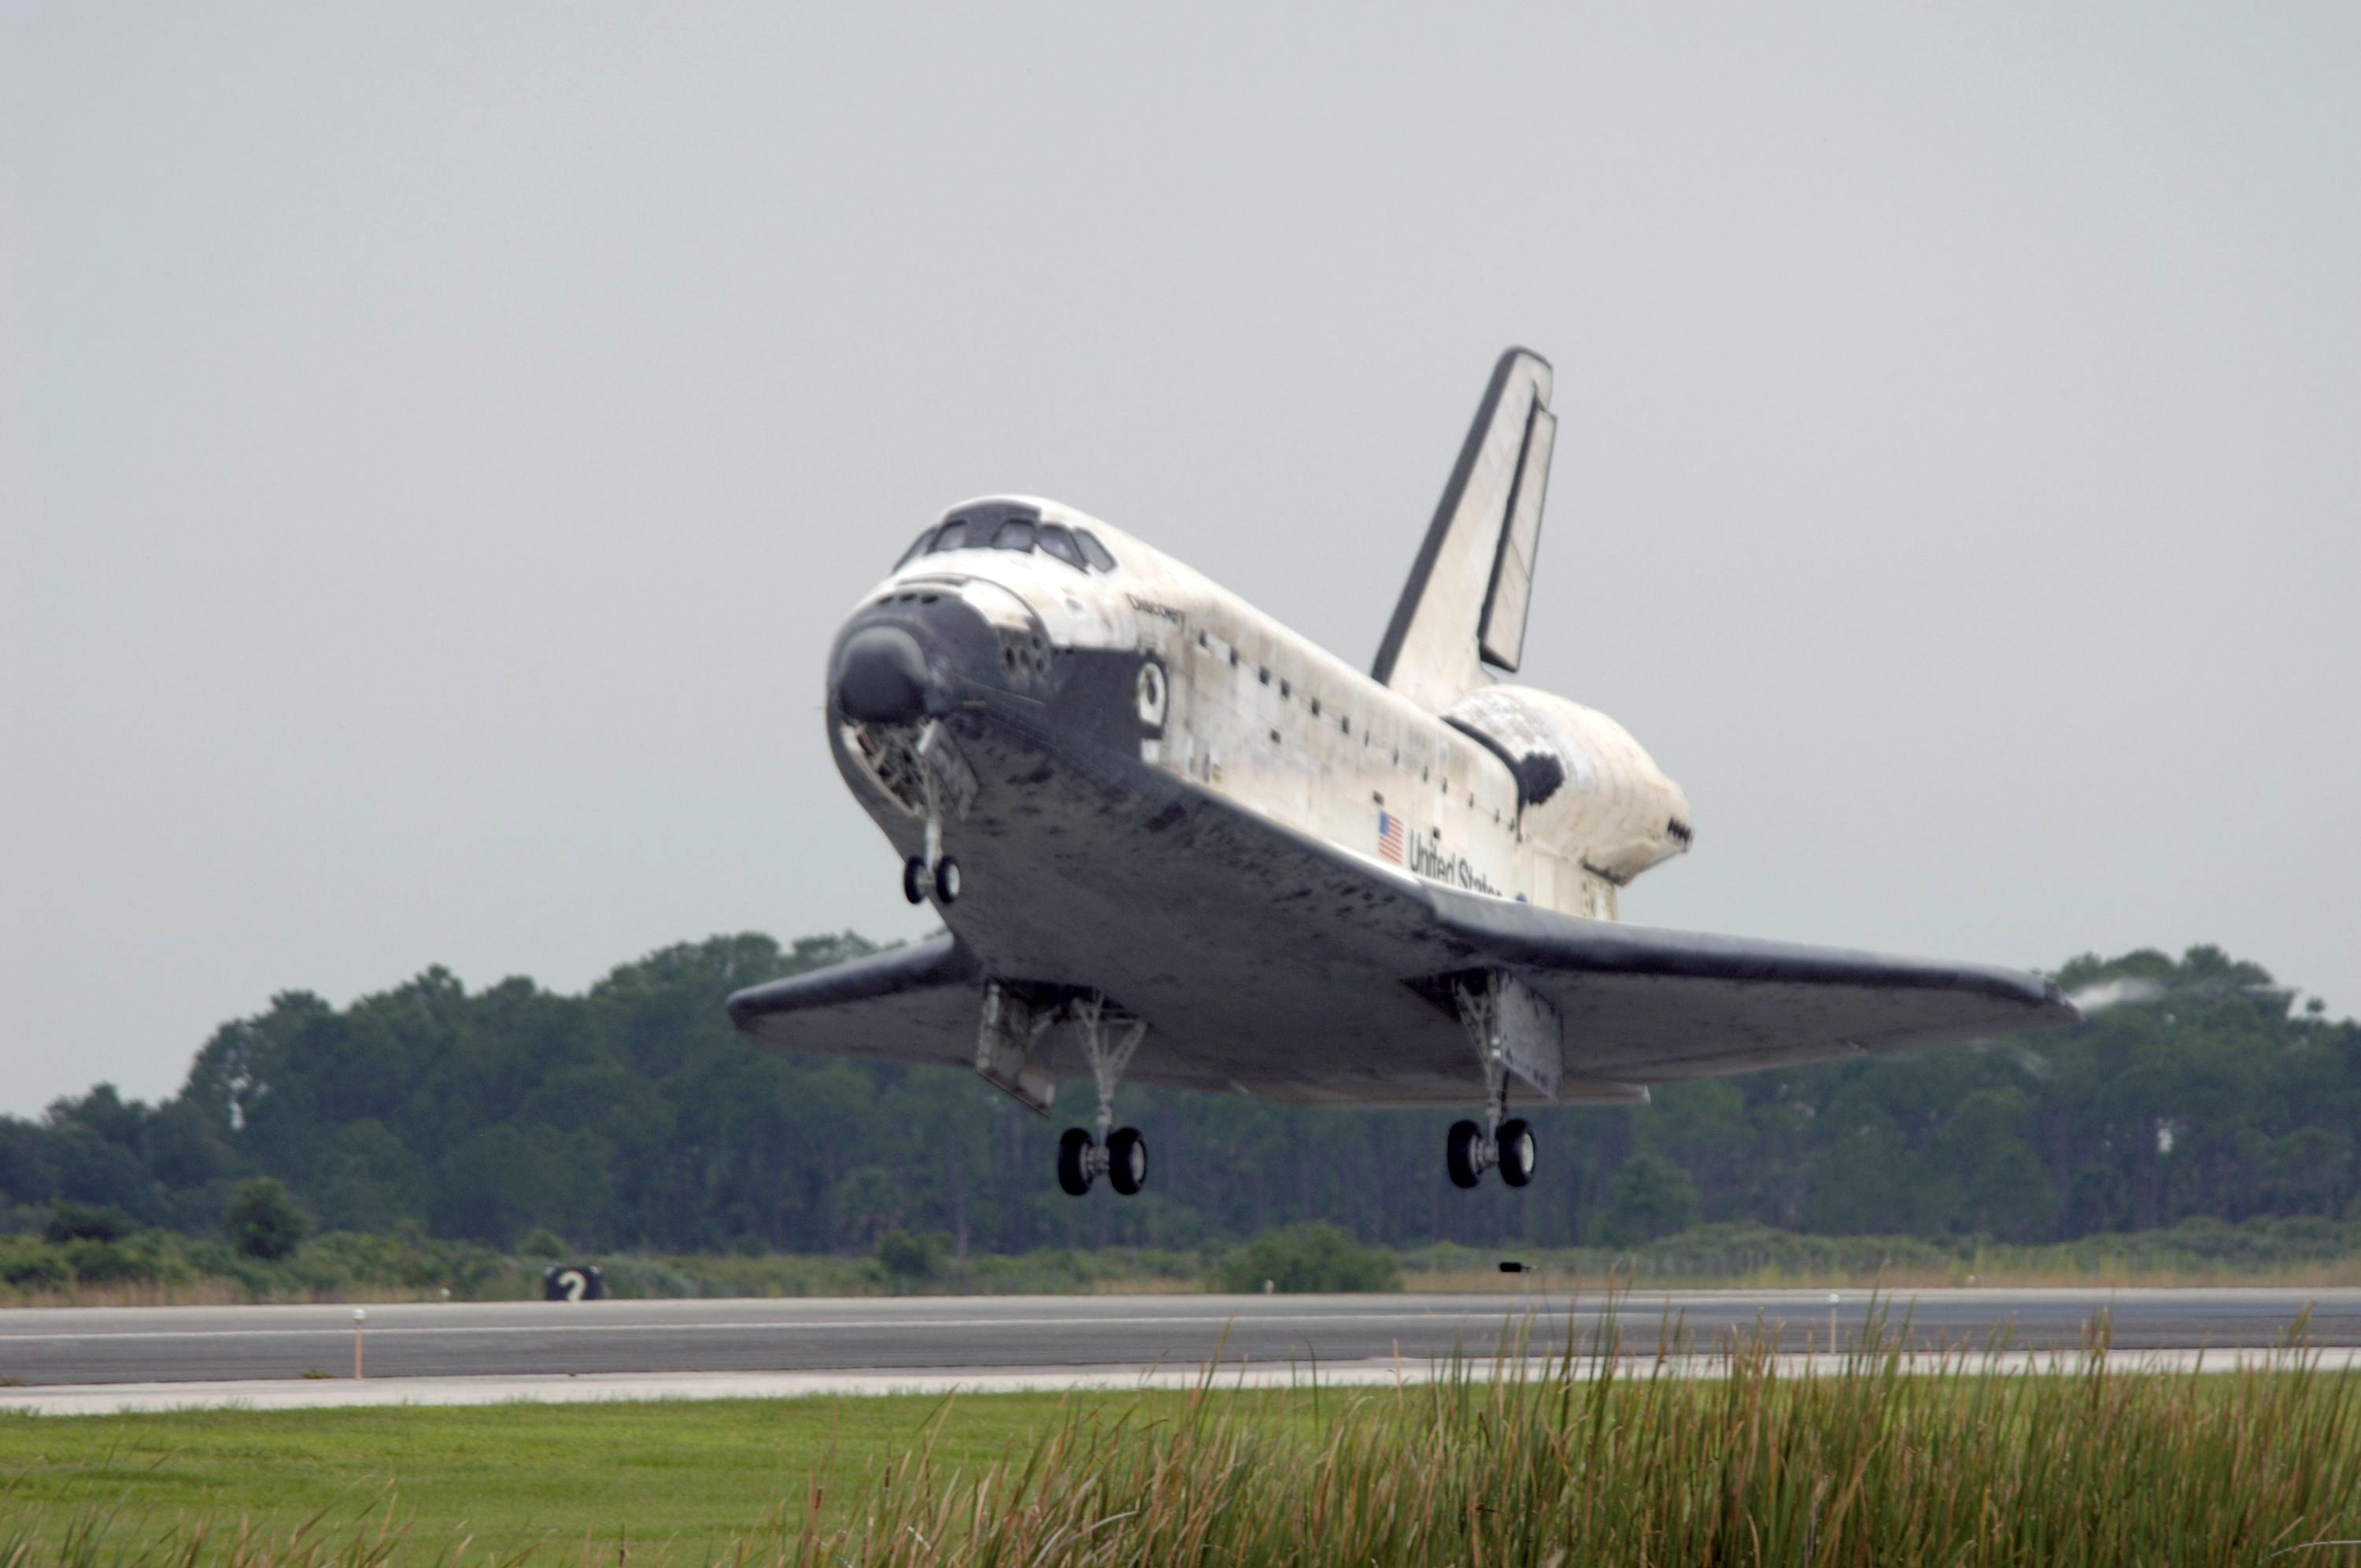 space shuttle landing from space to earth - photo #15